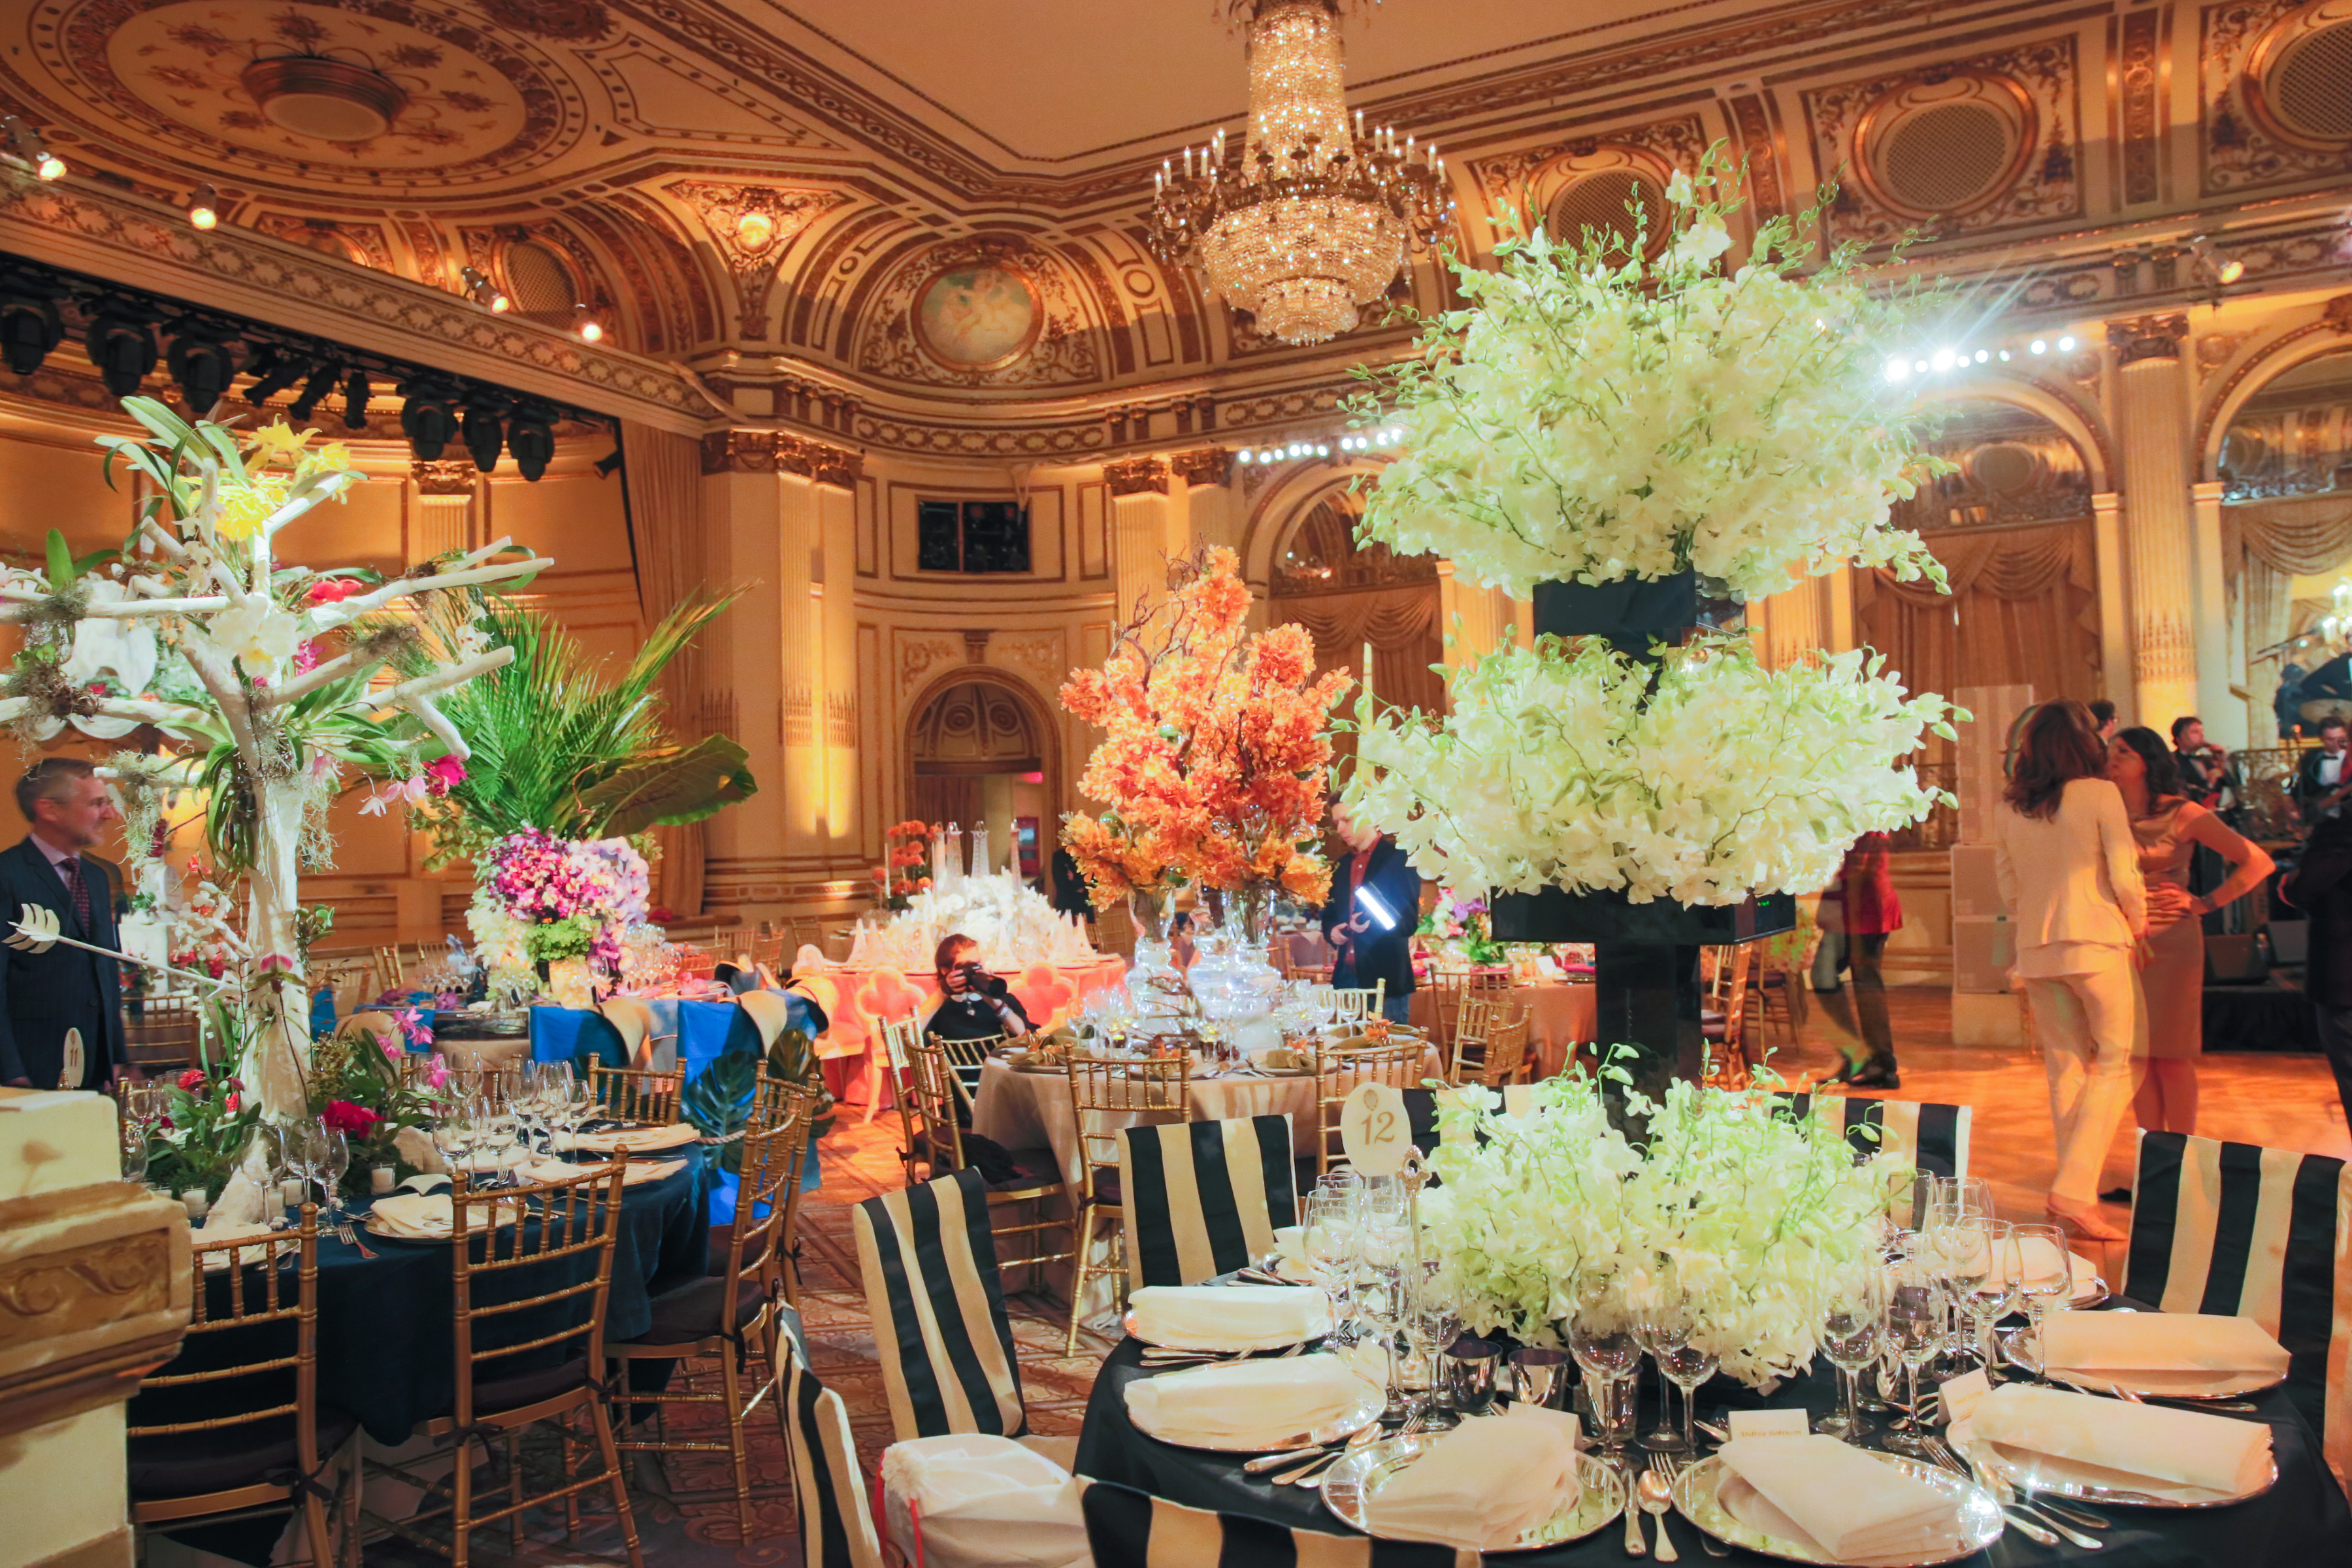 Orchid dinner amazing centerpieces